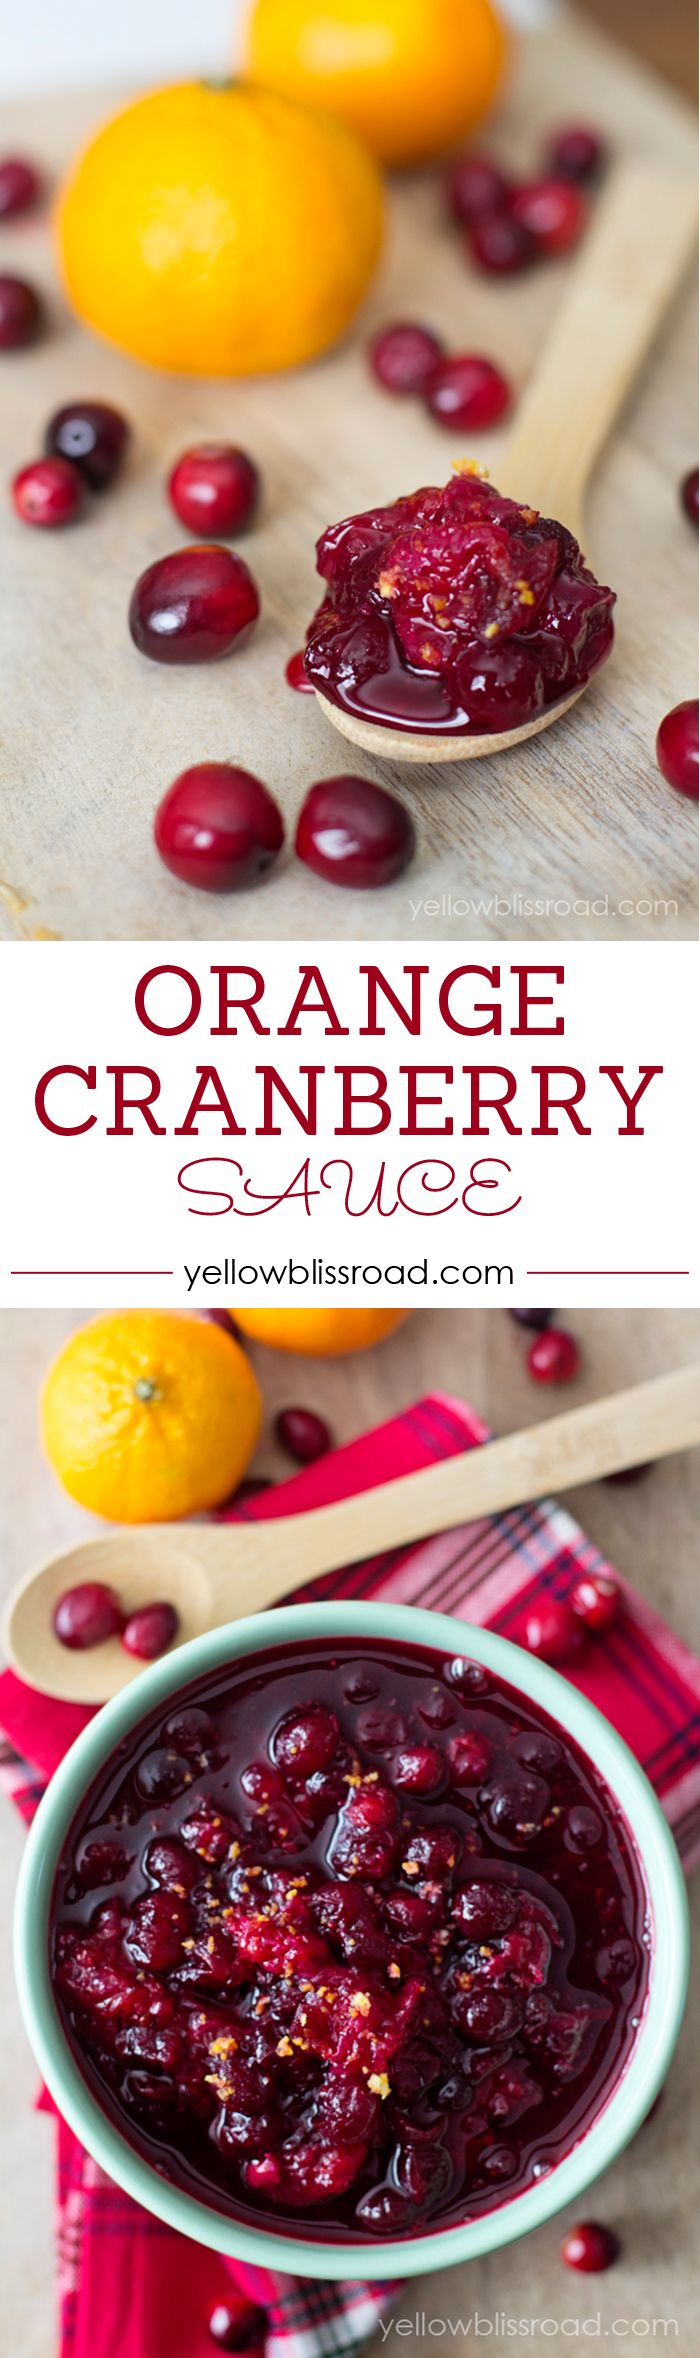 Orange Cranberry Sauce - Perfect for Thanksgiving or Christmas Dinner and especially for after Leftover Turkey Sandwiches!